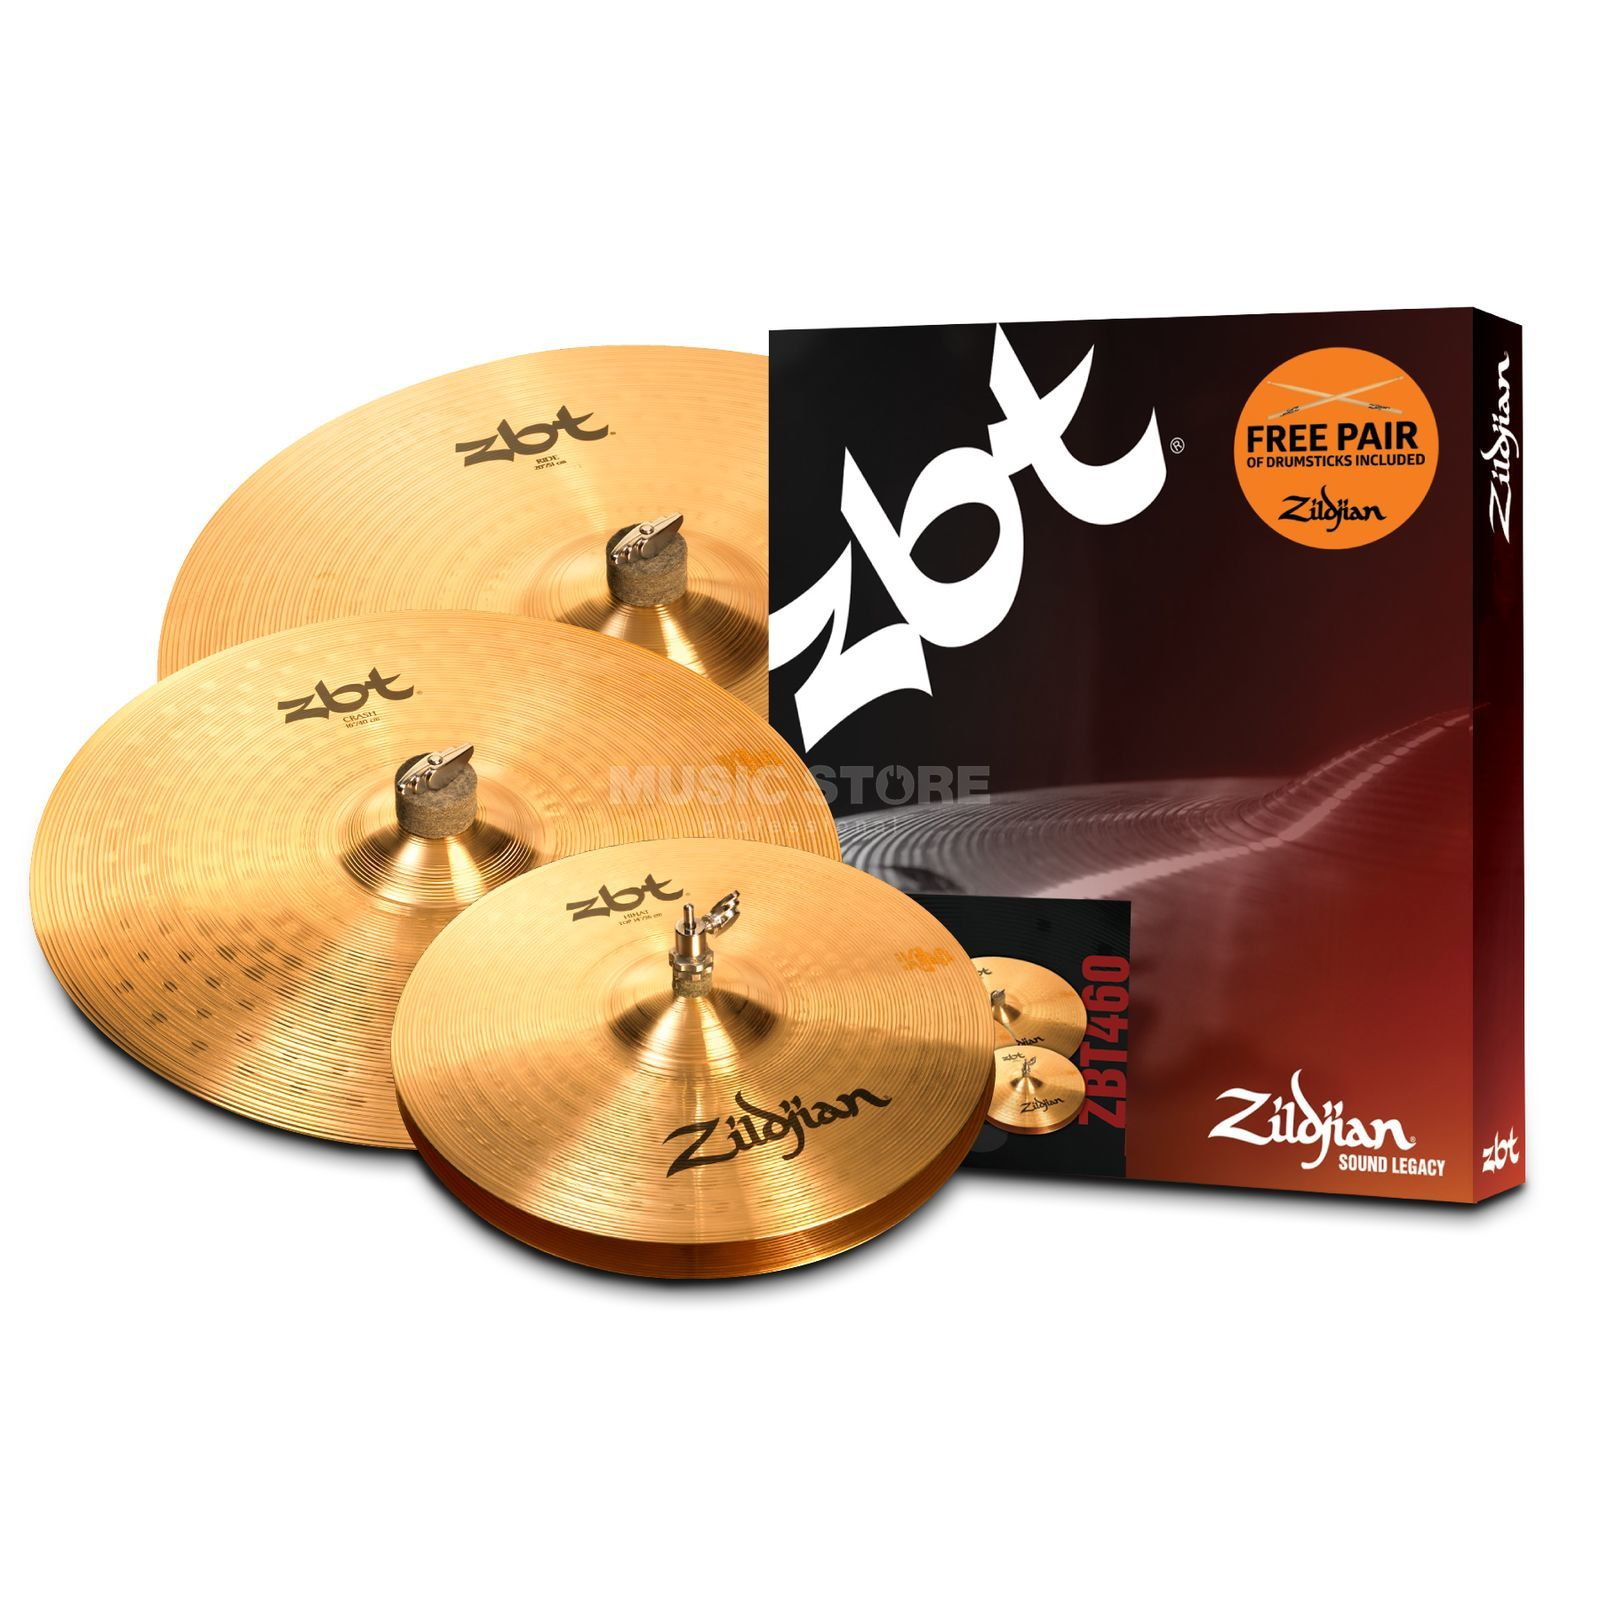 "Zildjian ZBT Box Set incl. Sticks, 14"" HH, 16"" CR, 20"" R Produktbillede"